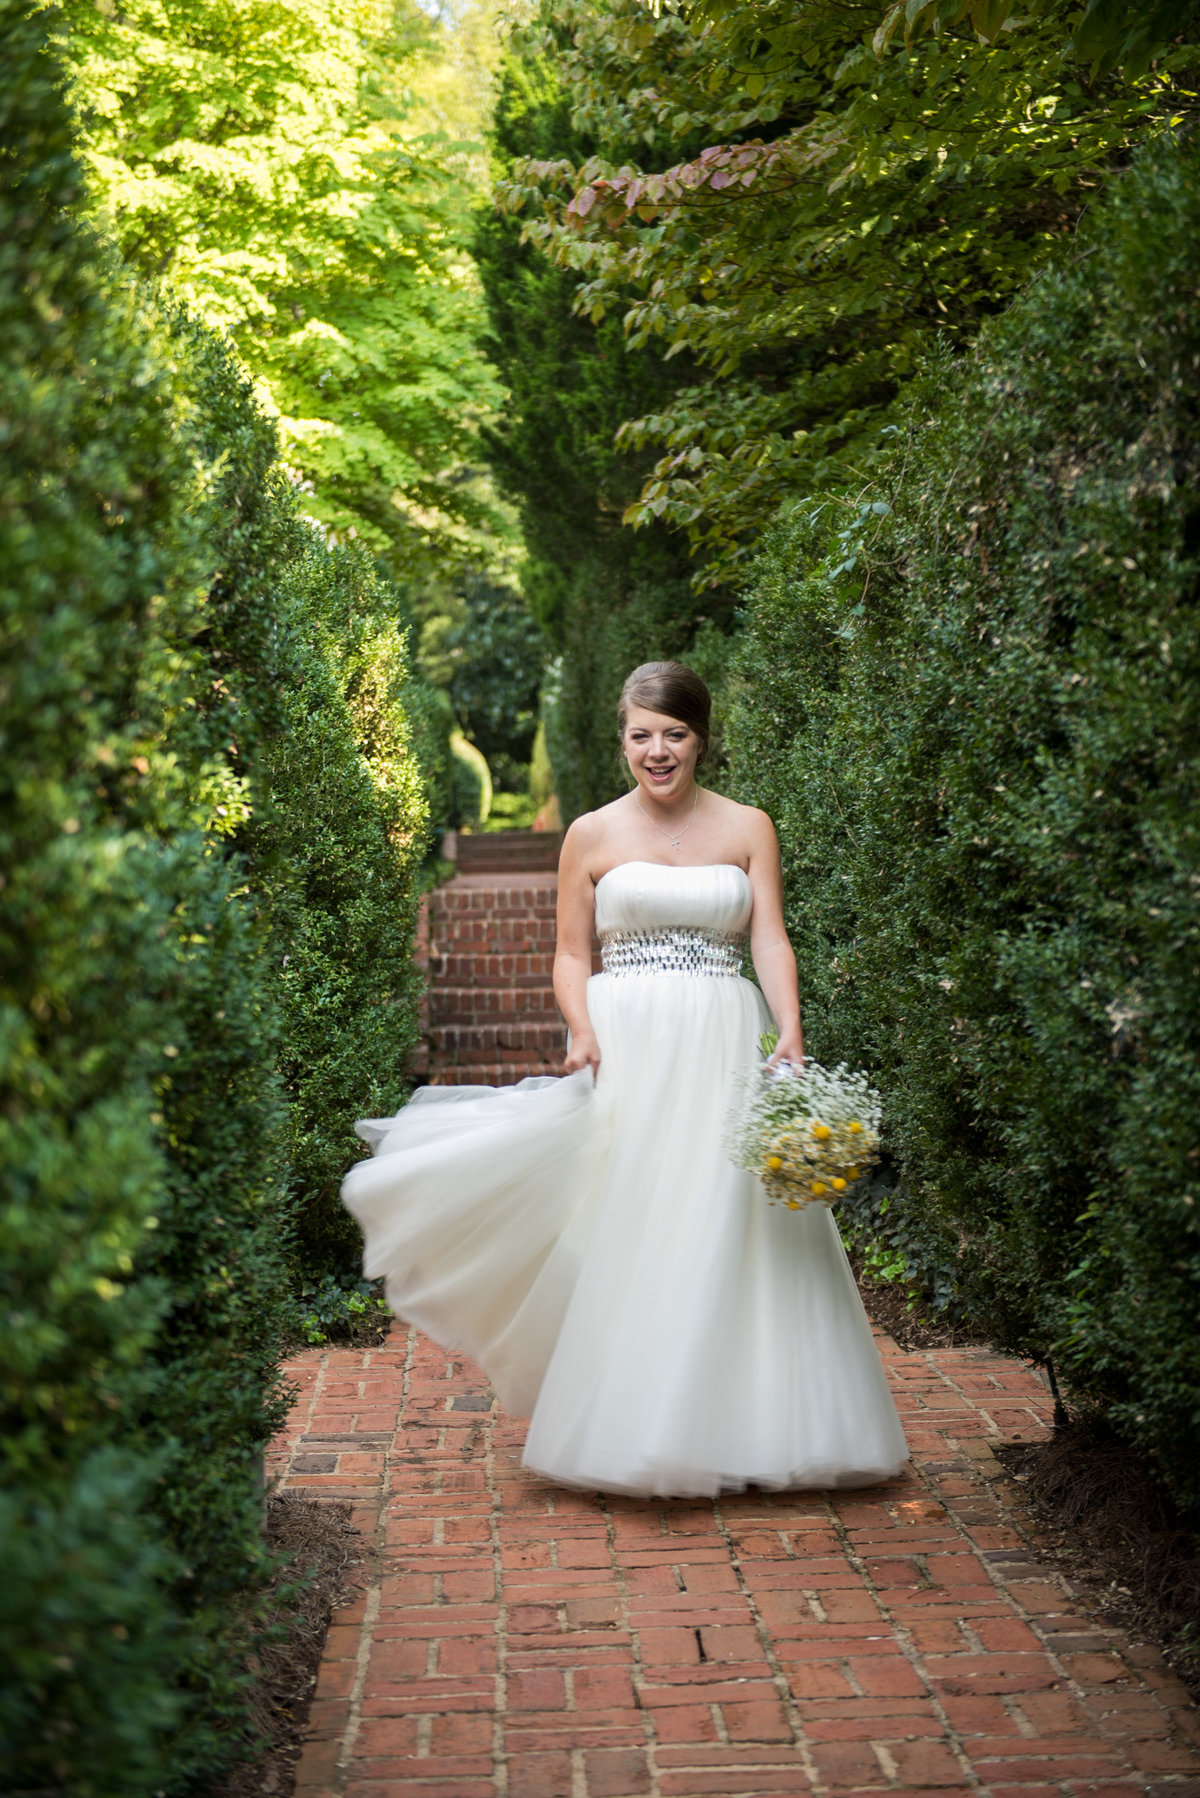 Emily+TristanWedding-BridalPortraits-4